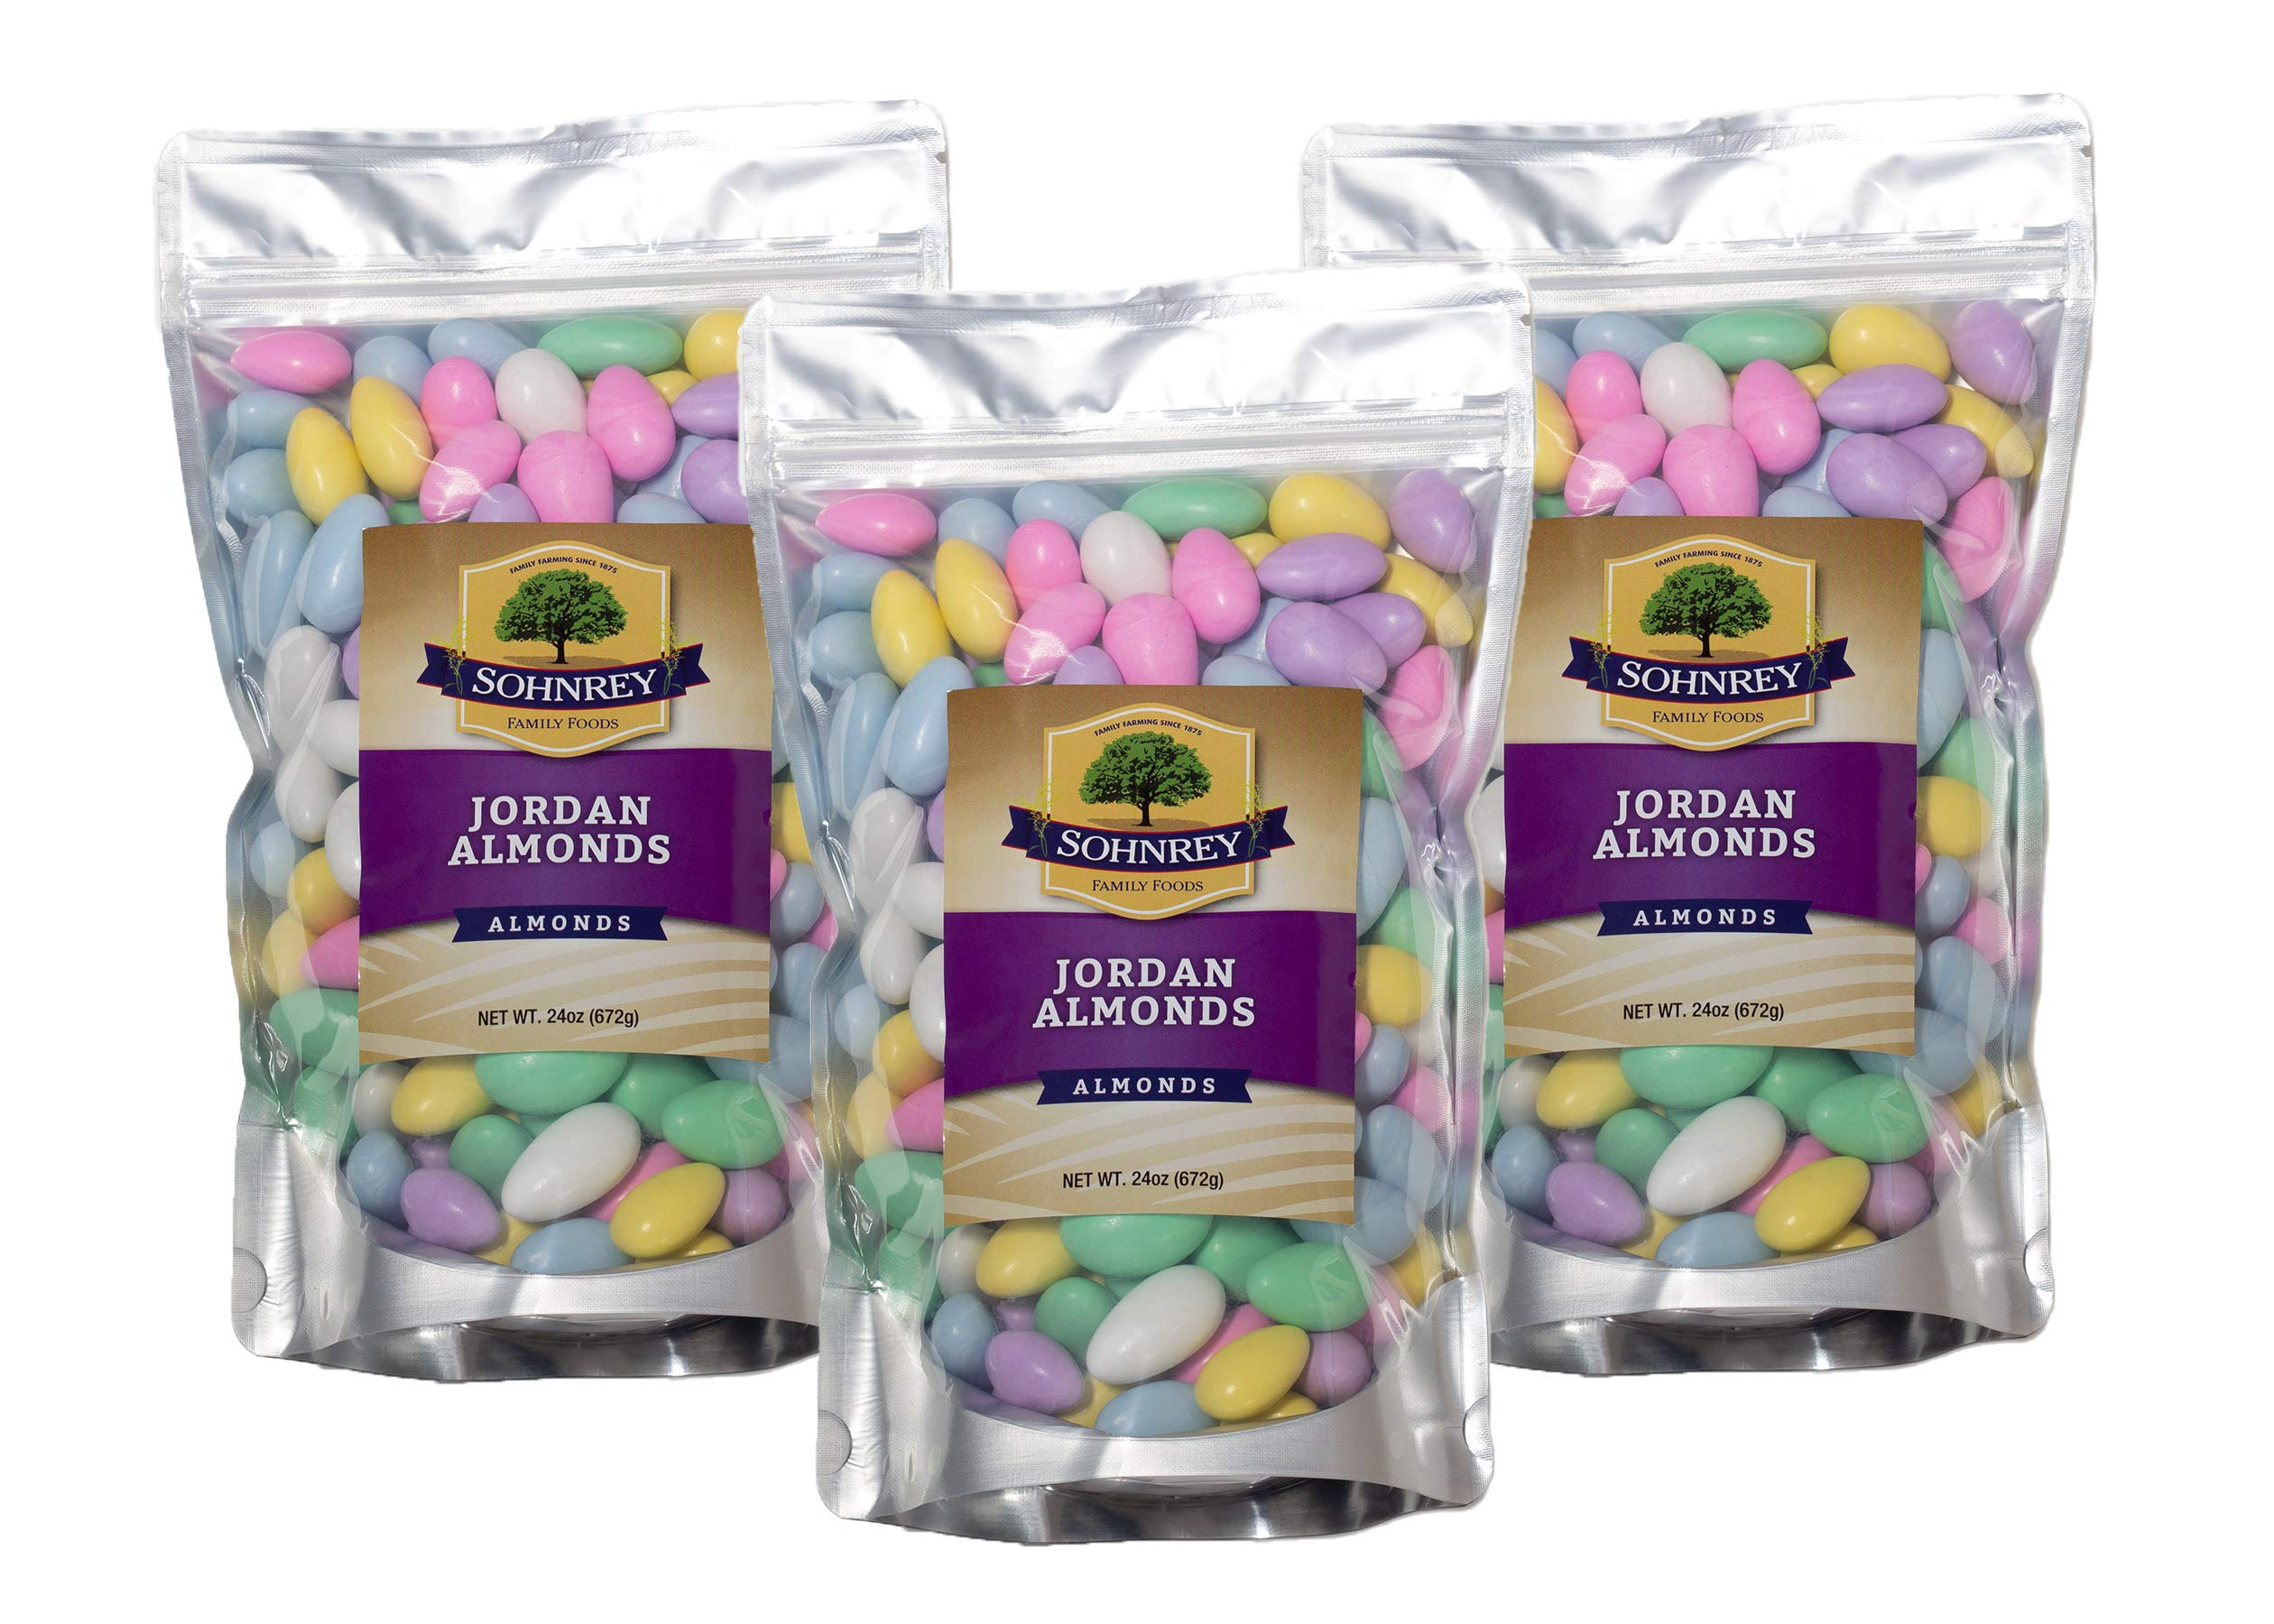 Jordan Almonds Wedding Holiday Party Favor Candies in Colorful Assorted Pastel Mix 3-Pack of 24 oz pouches by Sohnrey Family Foods by Sohnrey Family Foods